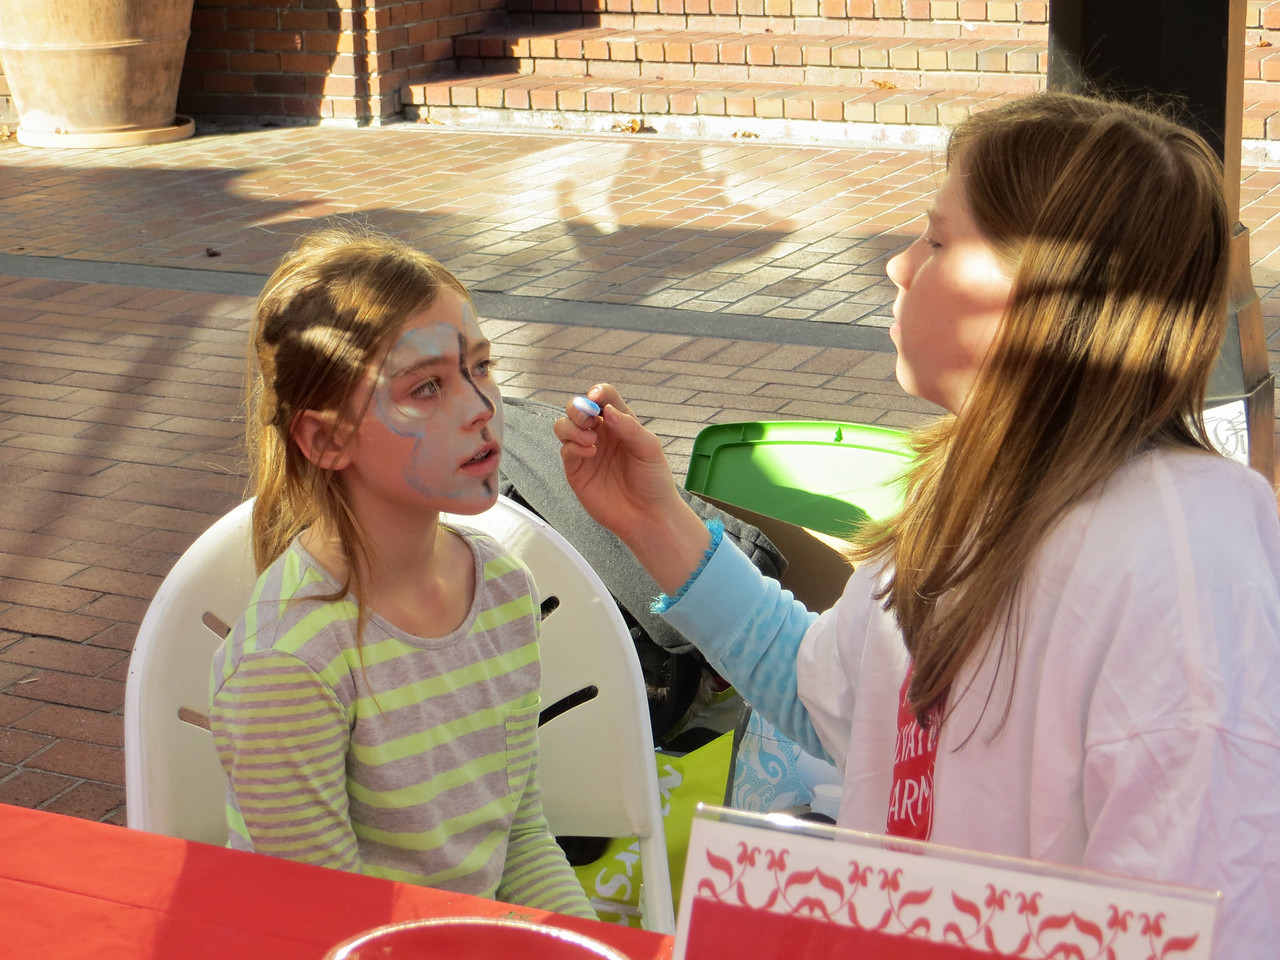 The girls had their faces painted